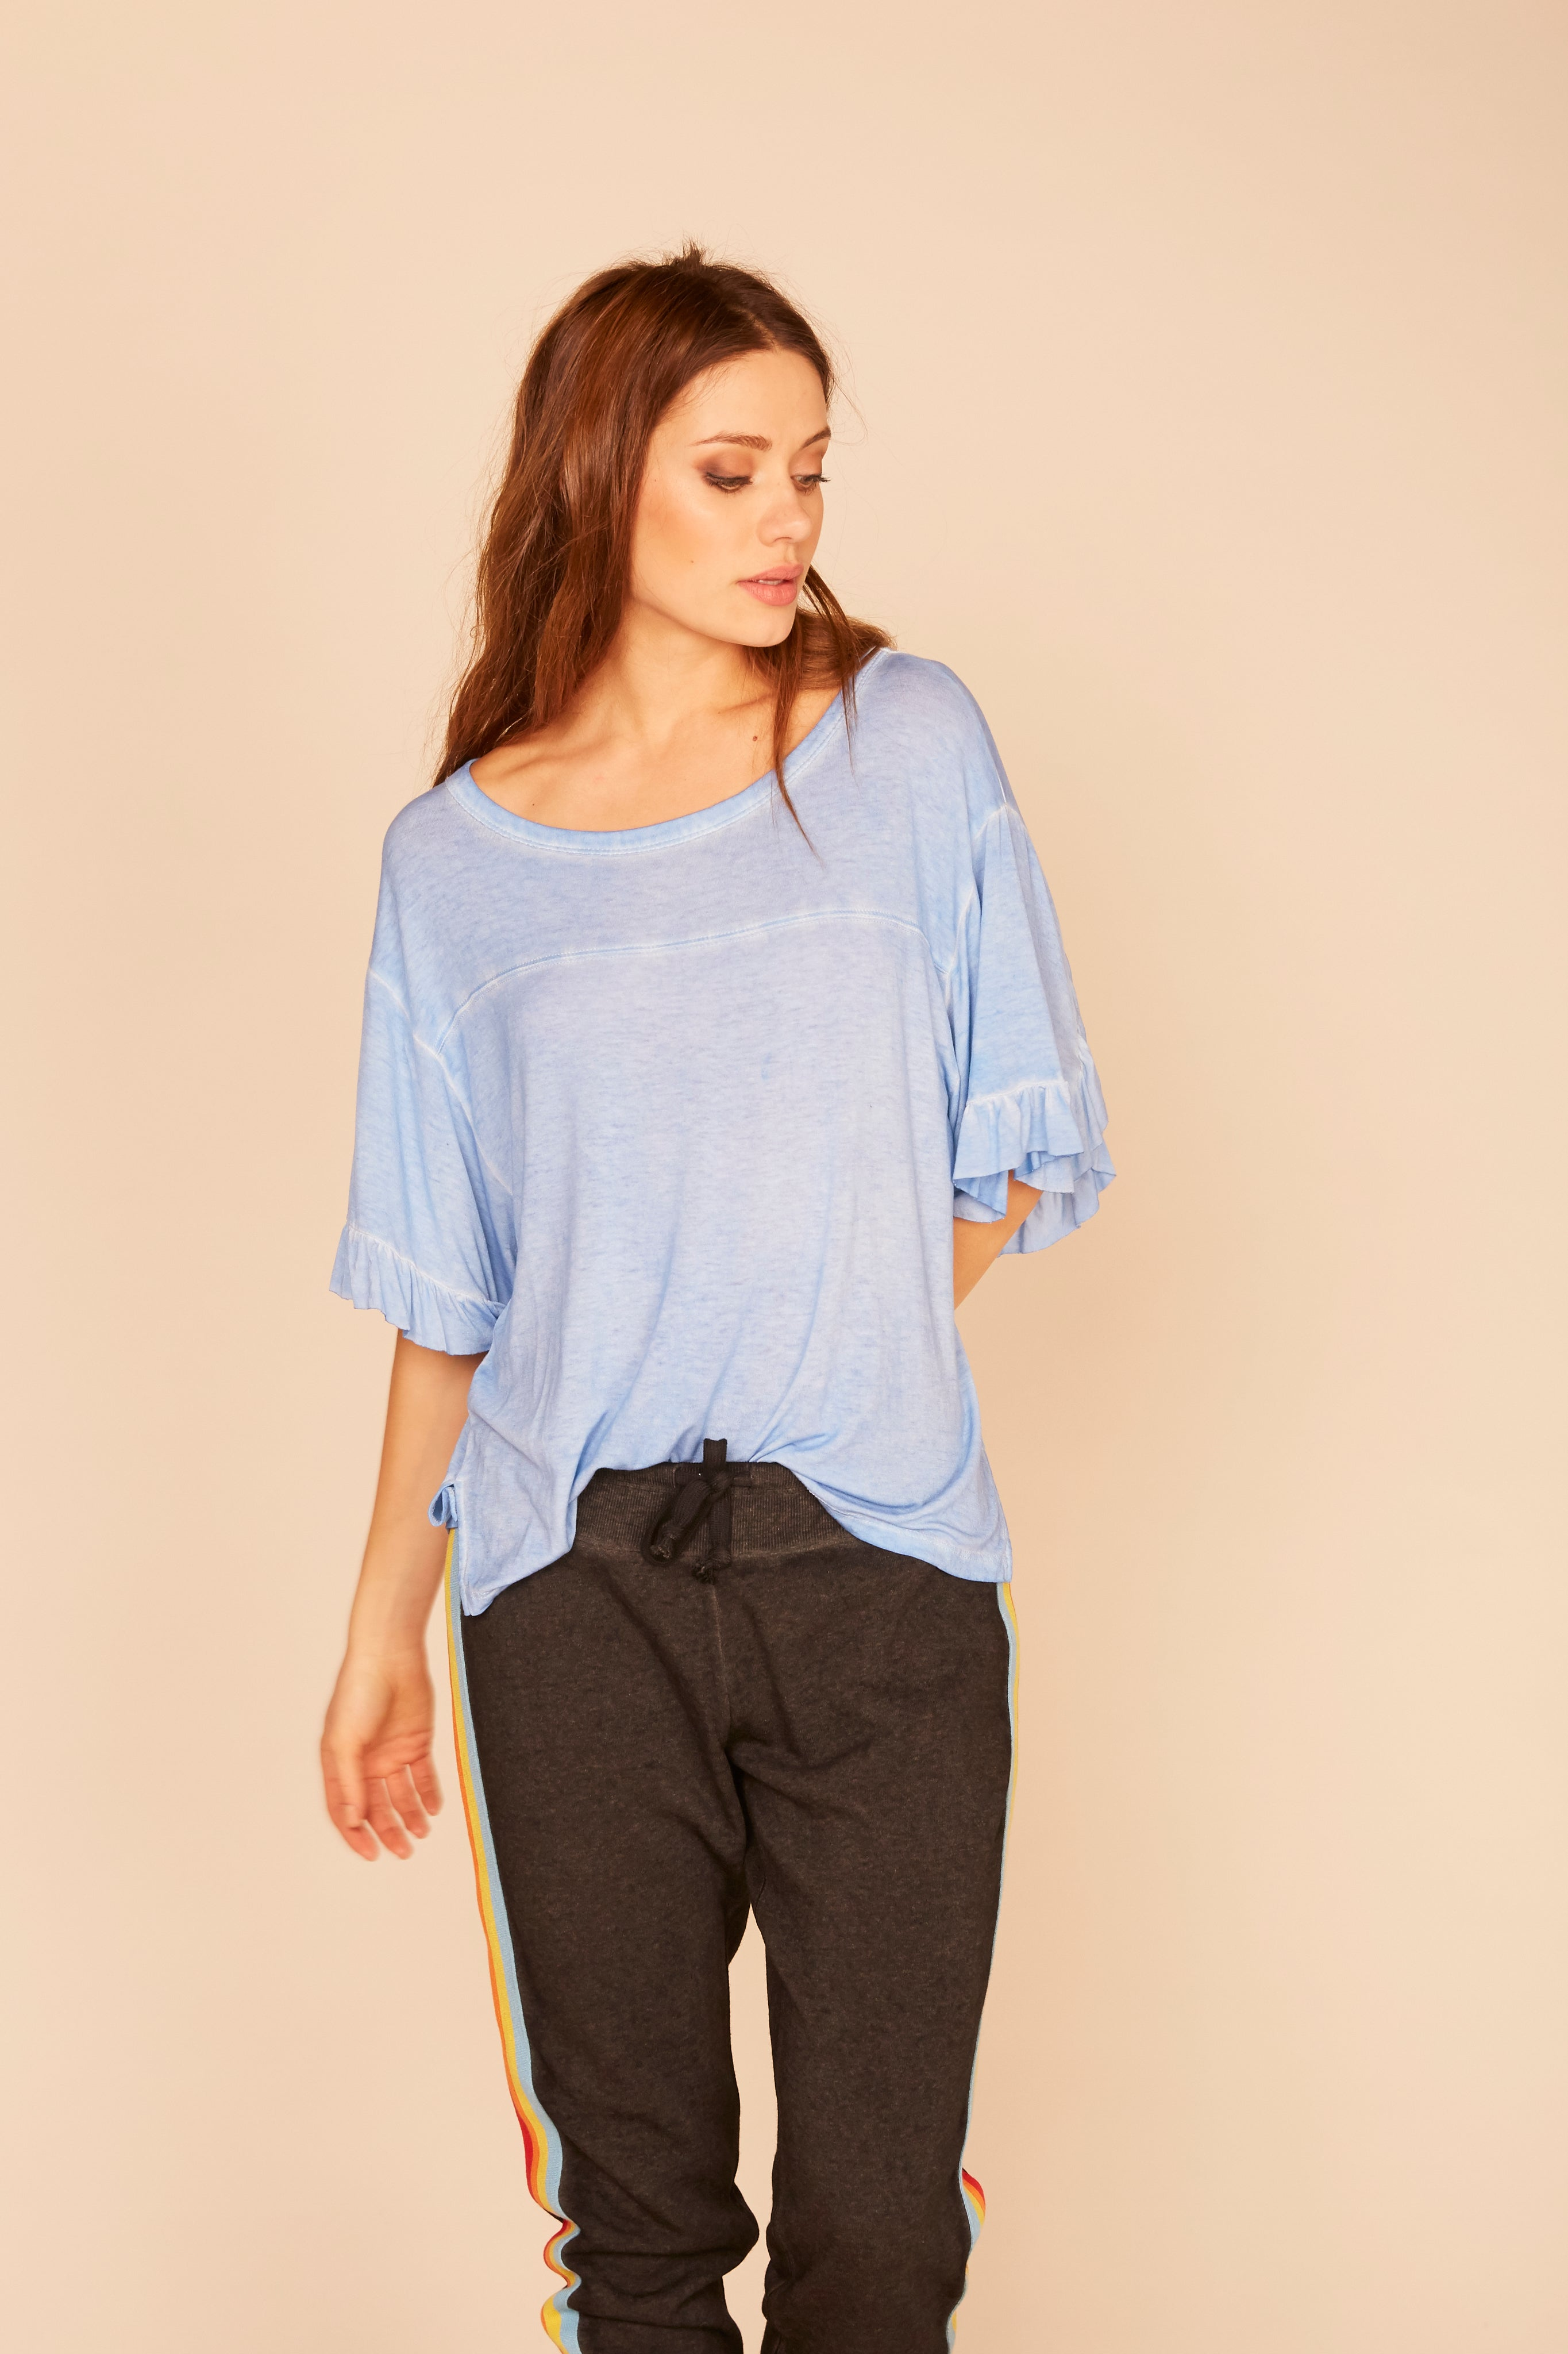 Ruffle Back Lightweight Tee